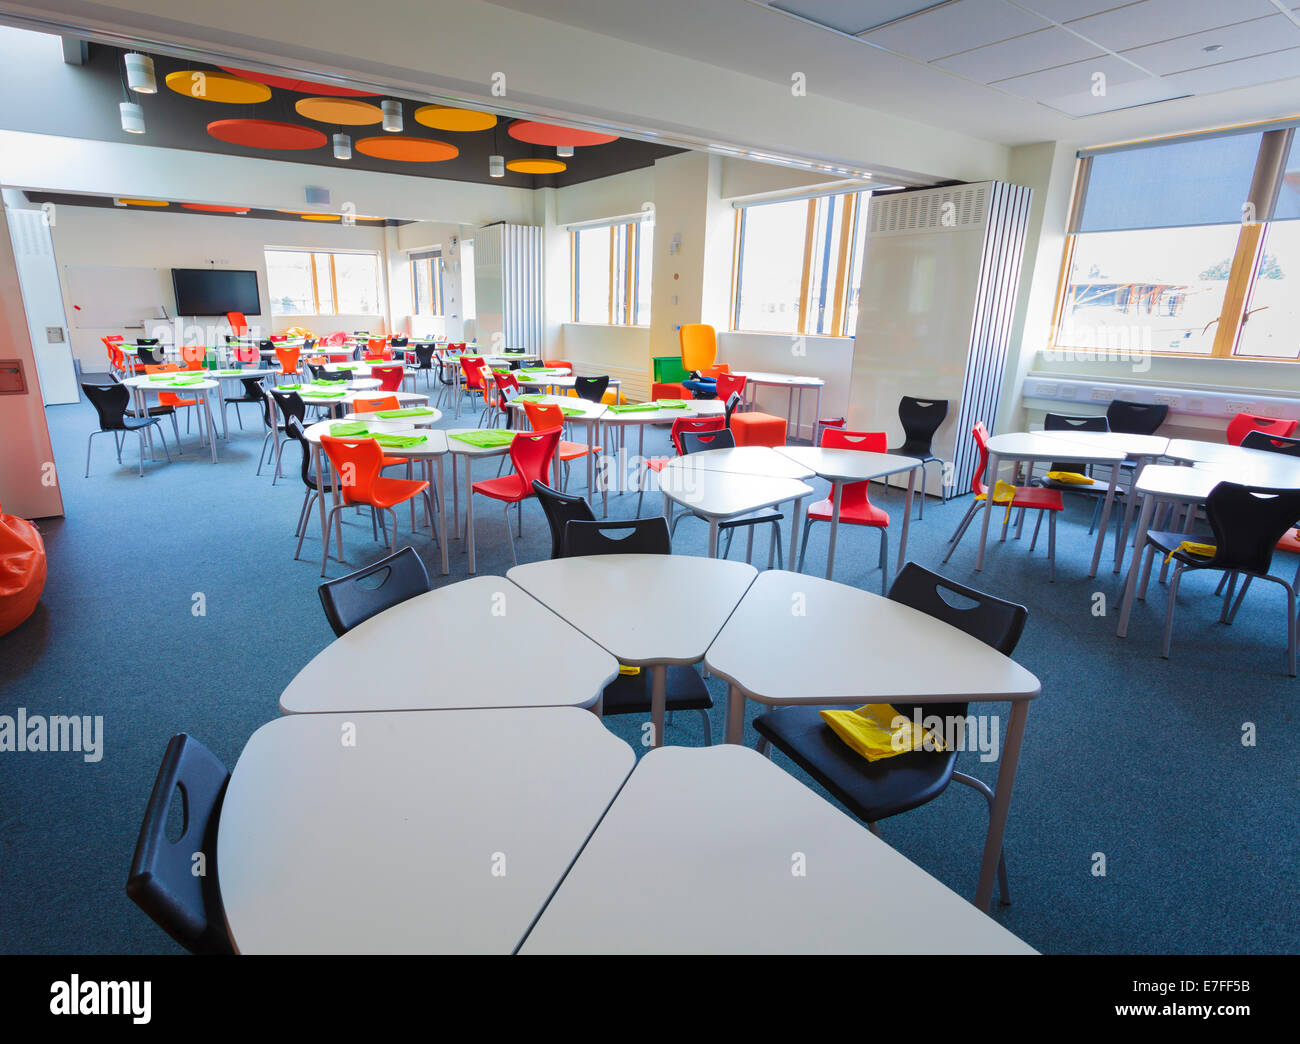 Modern Classroom Building ~ Unoccupied modern school classroom with desks in a circle